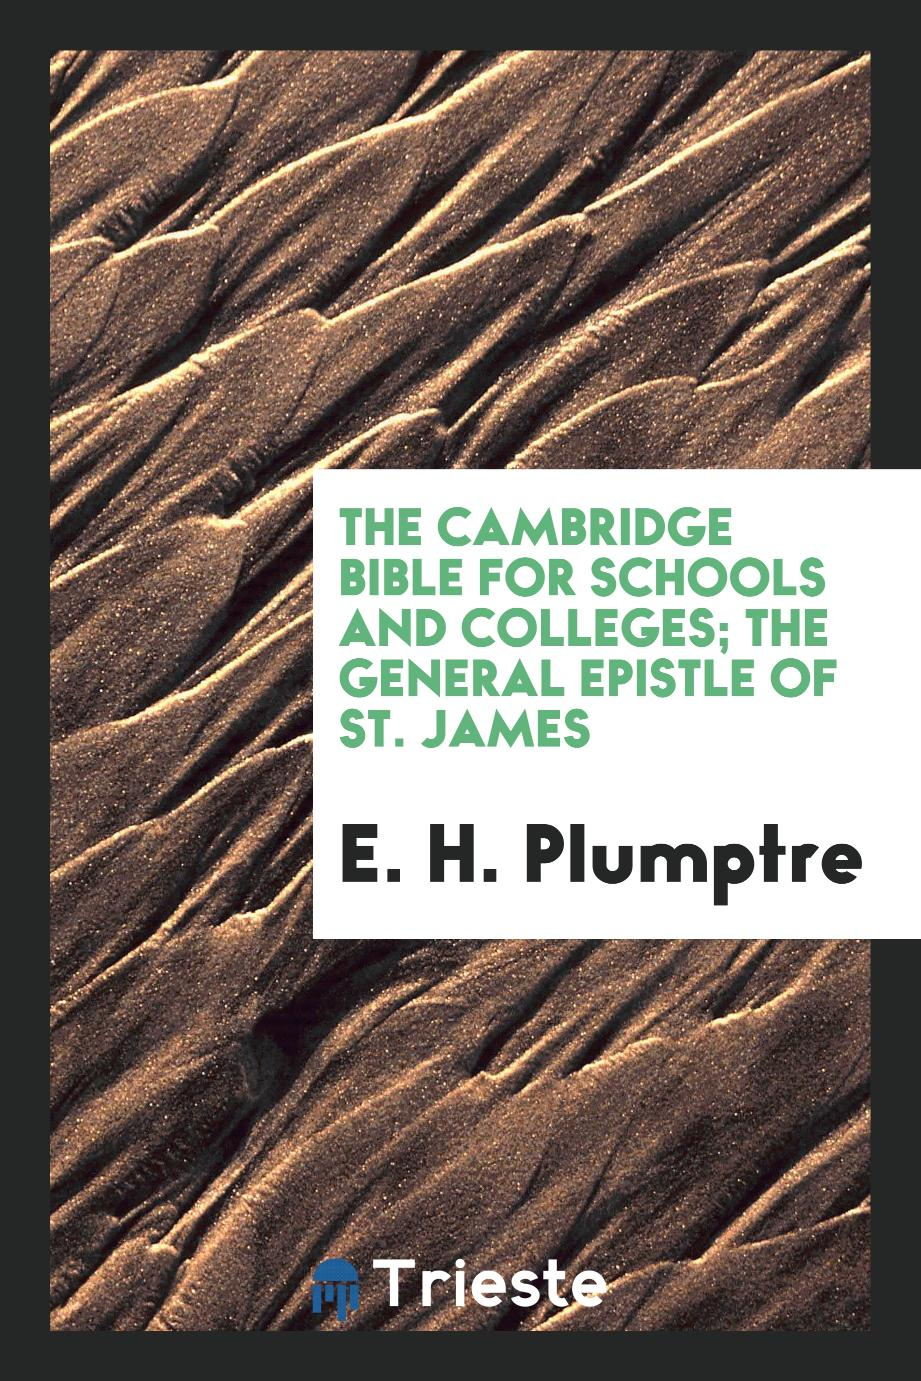 The Cambridge Bible for Schools and Colleges; The General Epistle of St. James